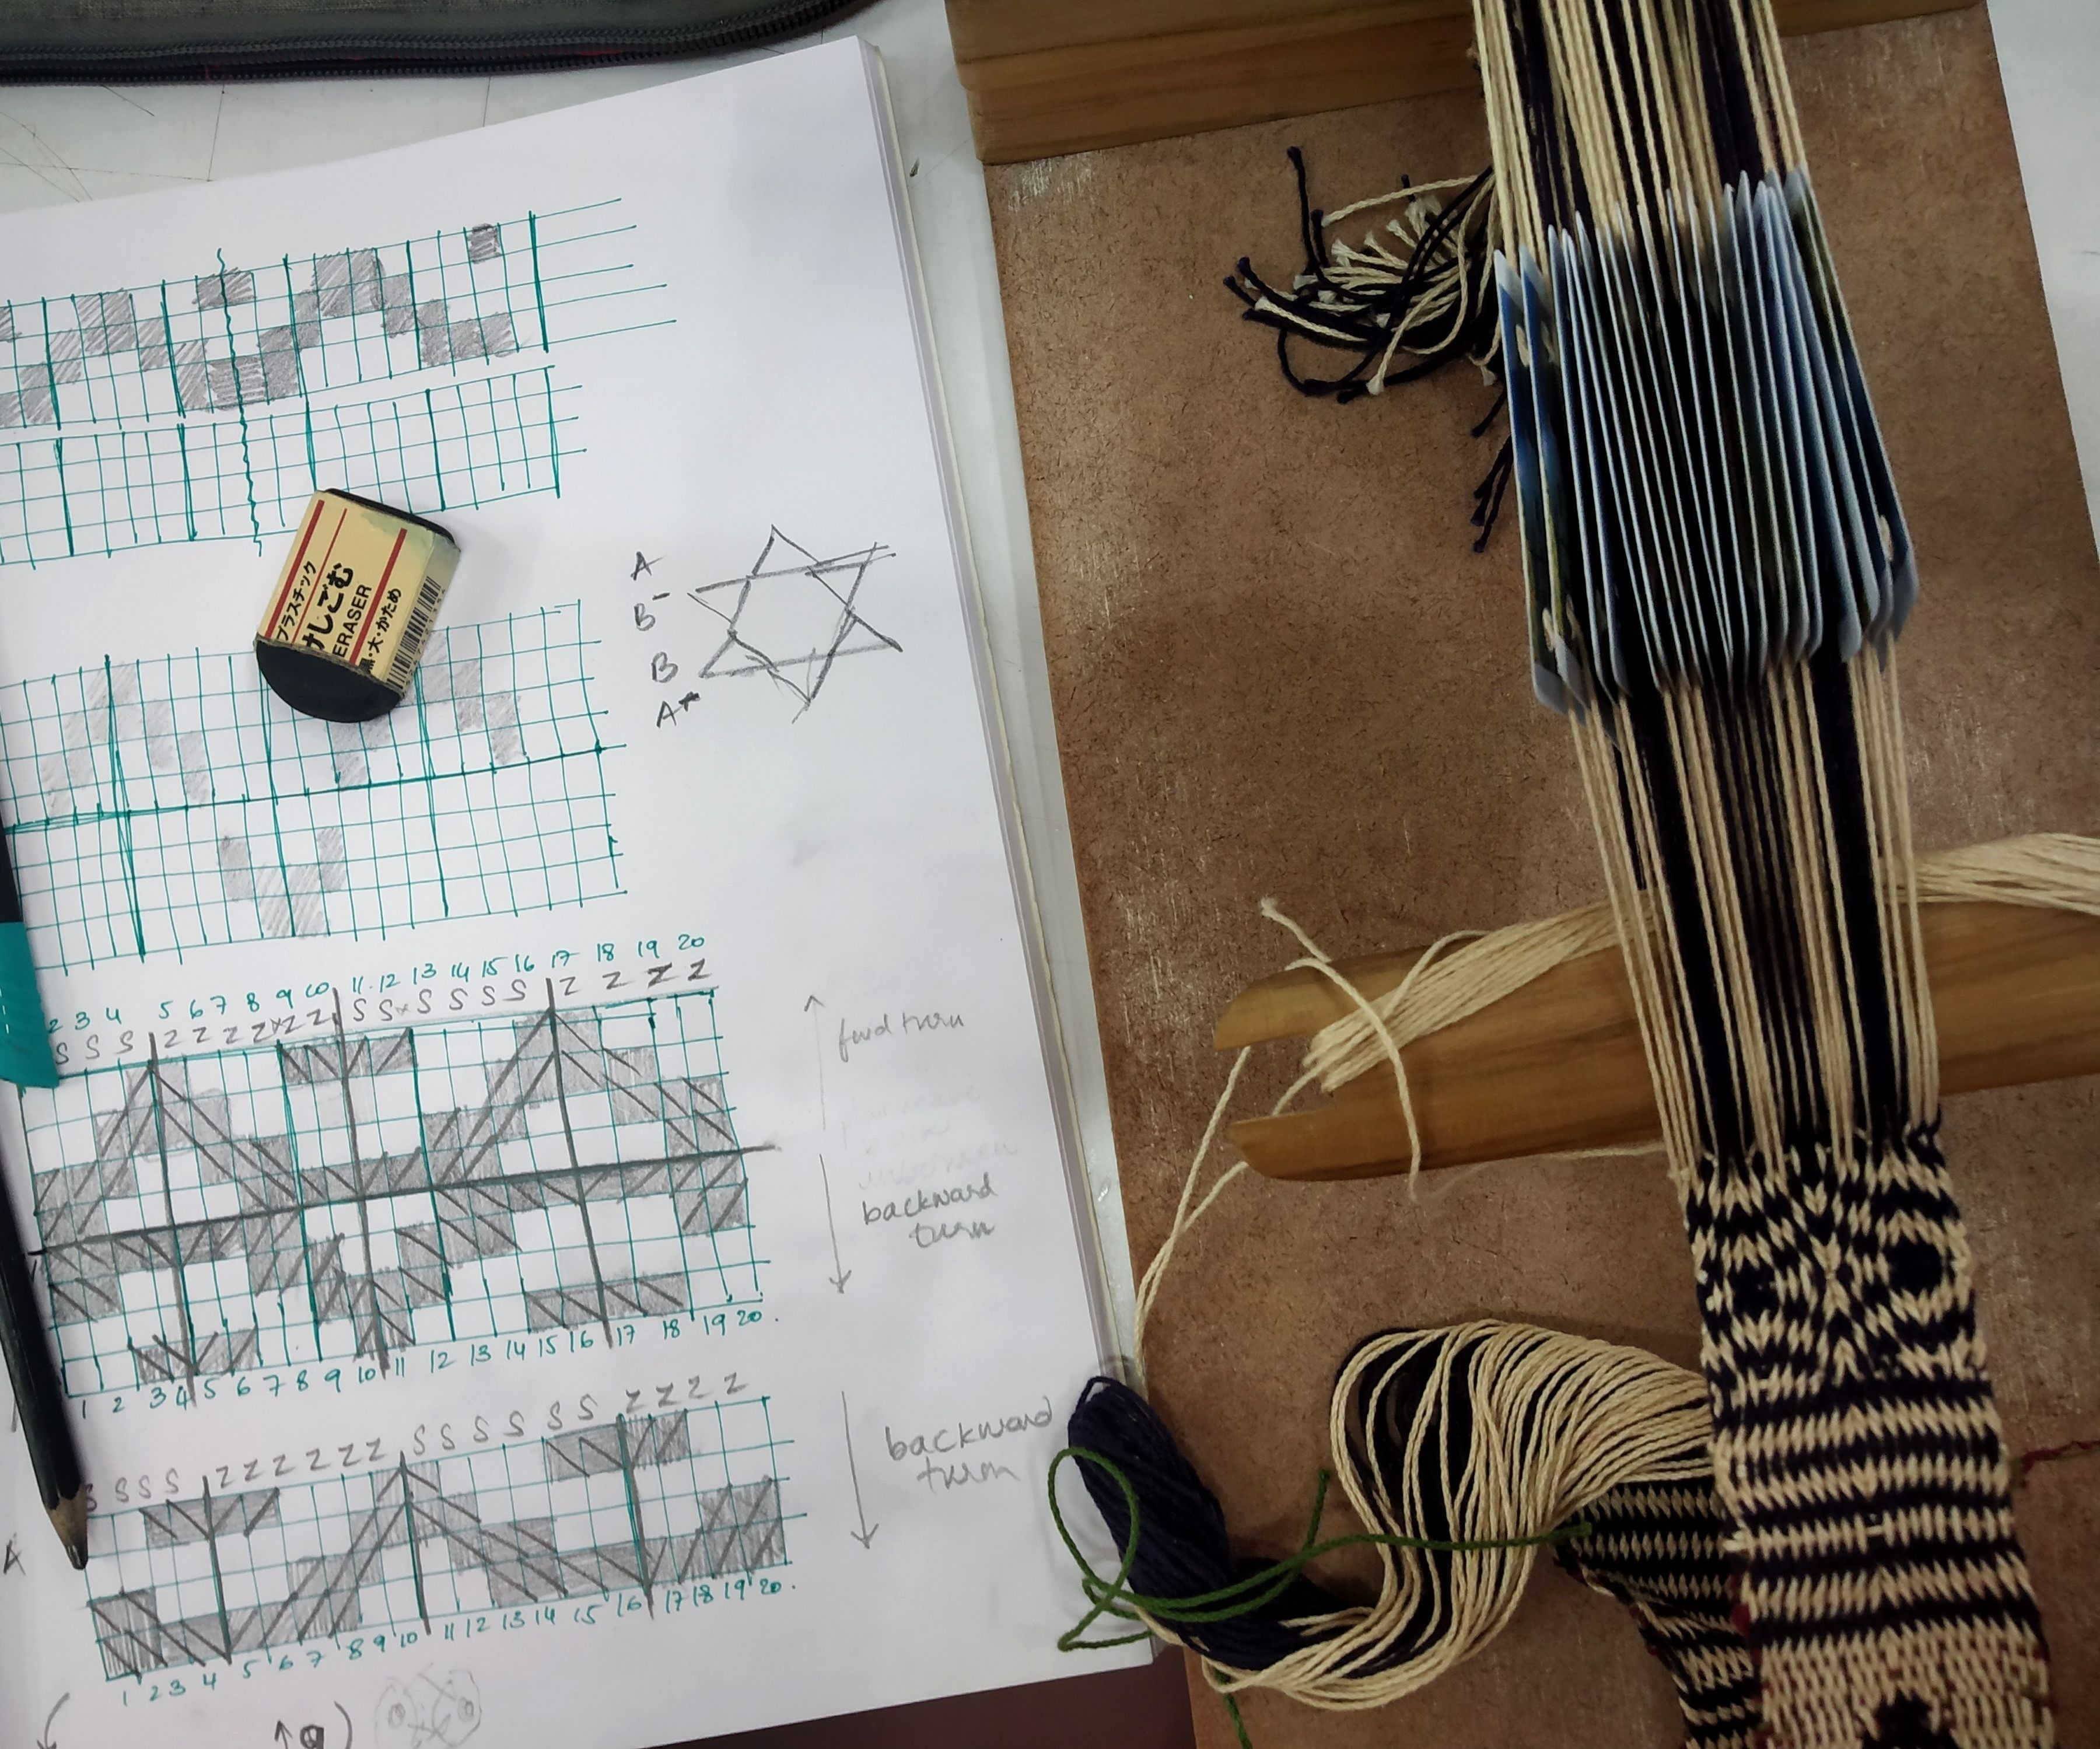 Weave Patterns on a Portable Loom